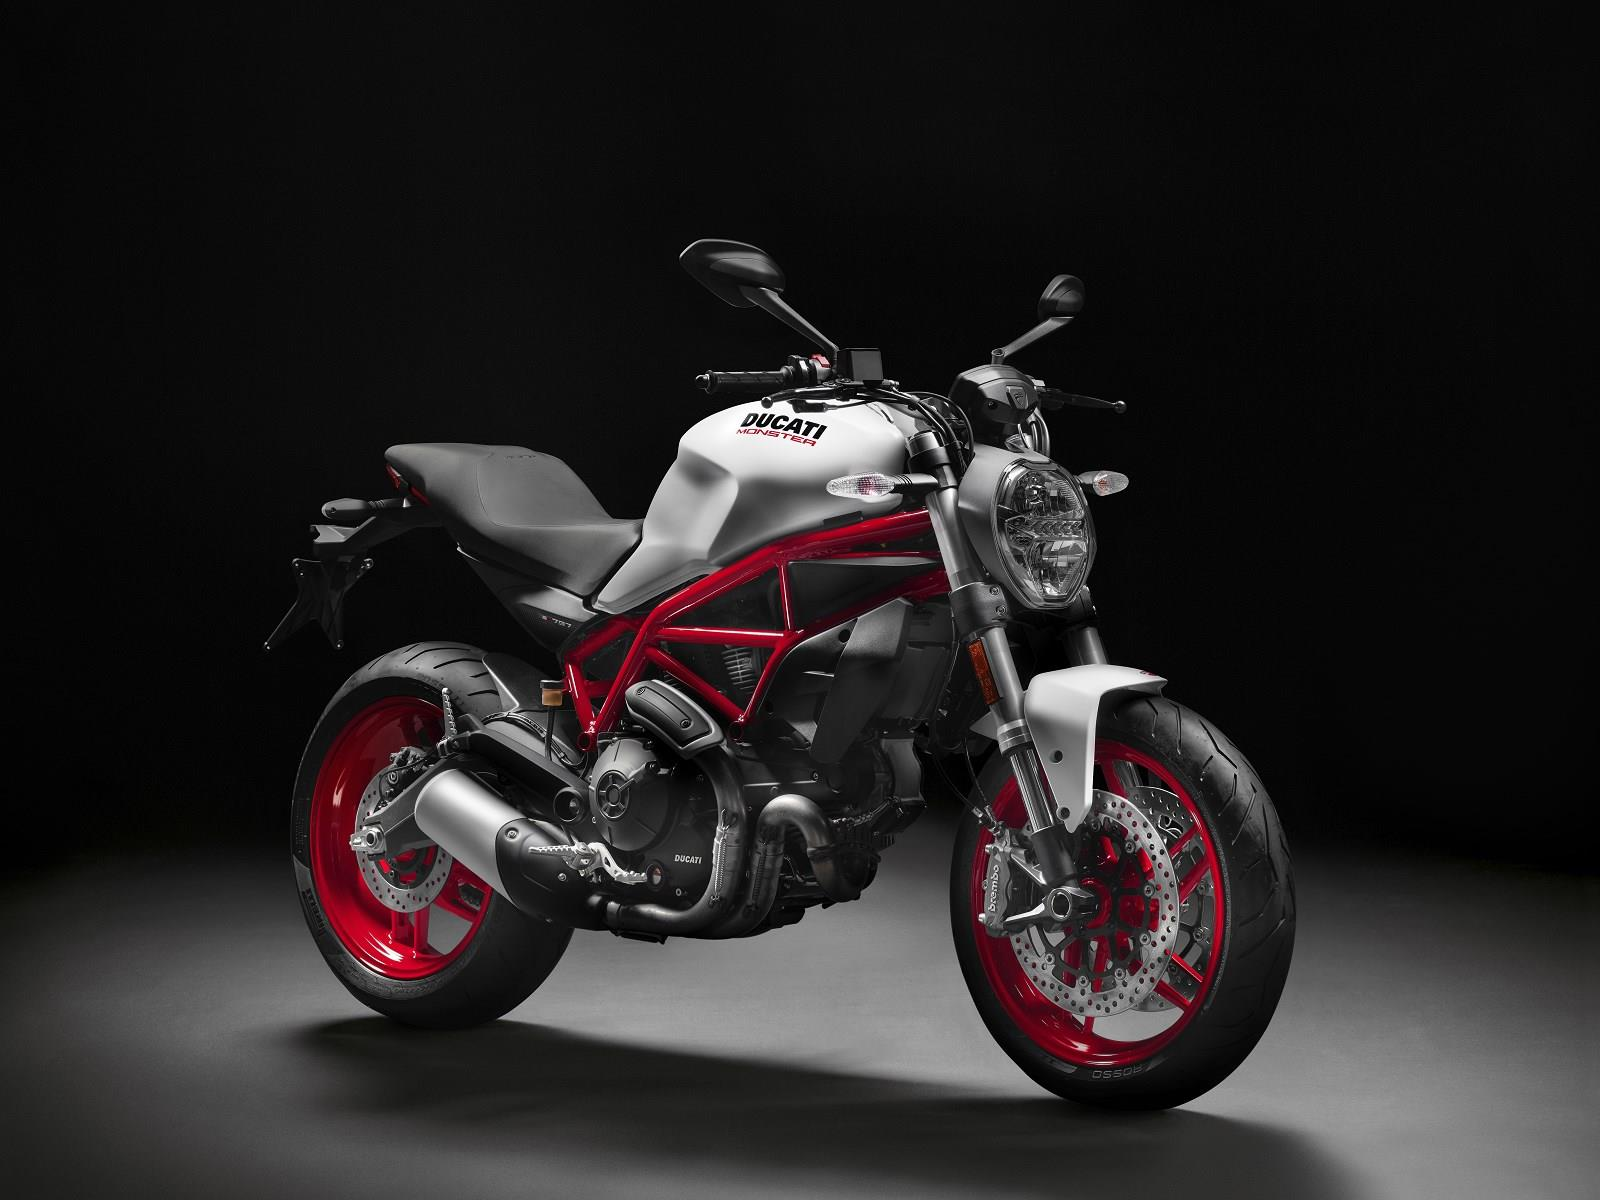 Ducati Monster 1200, Monster 797 unveiled at EICMA 2016